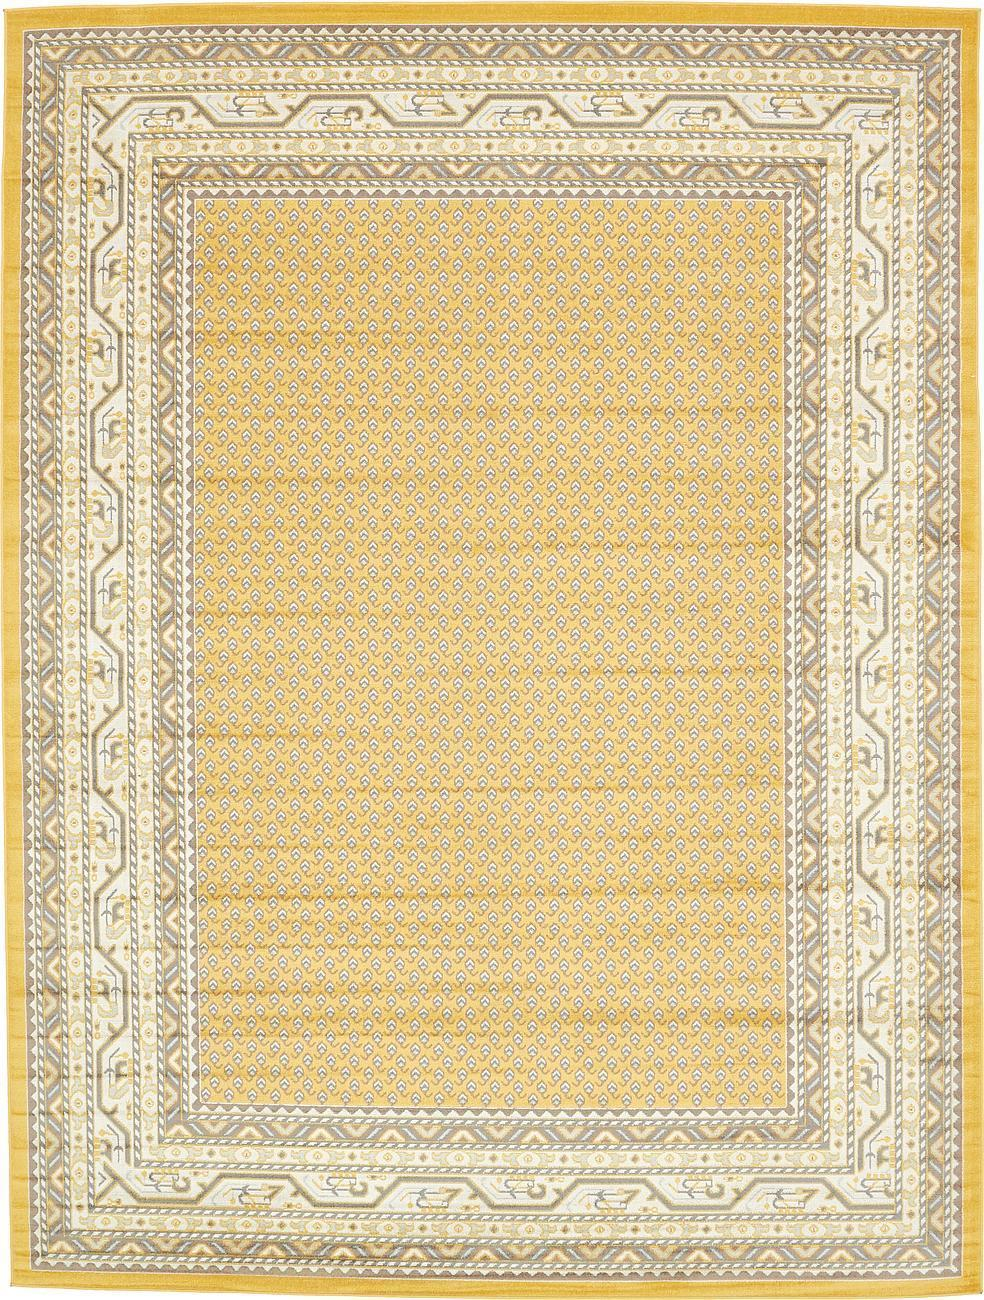 Clearance Liquidation Sale Rug Carpet Home Decor Turkish